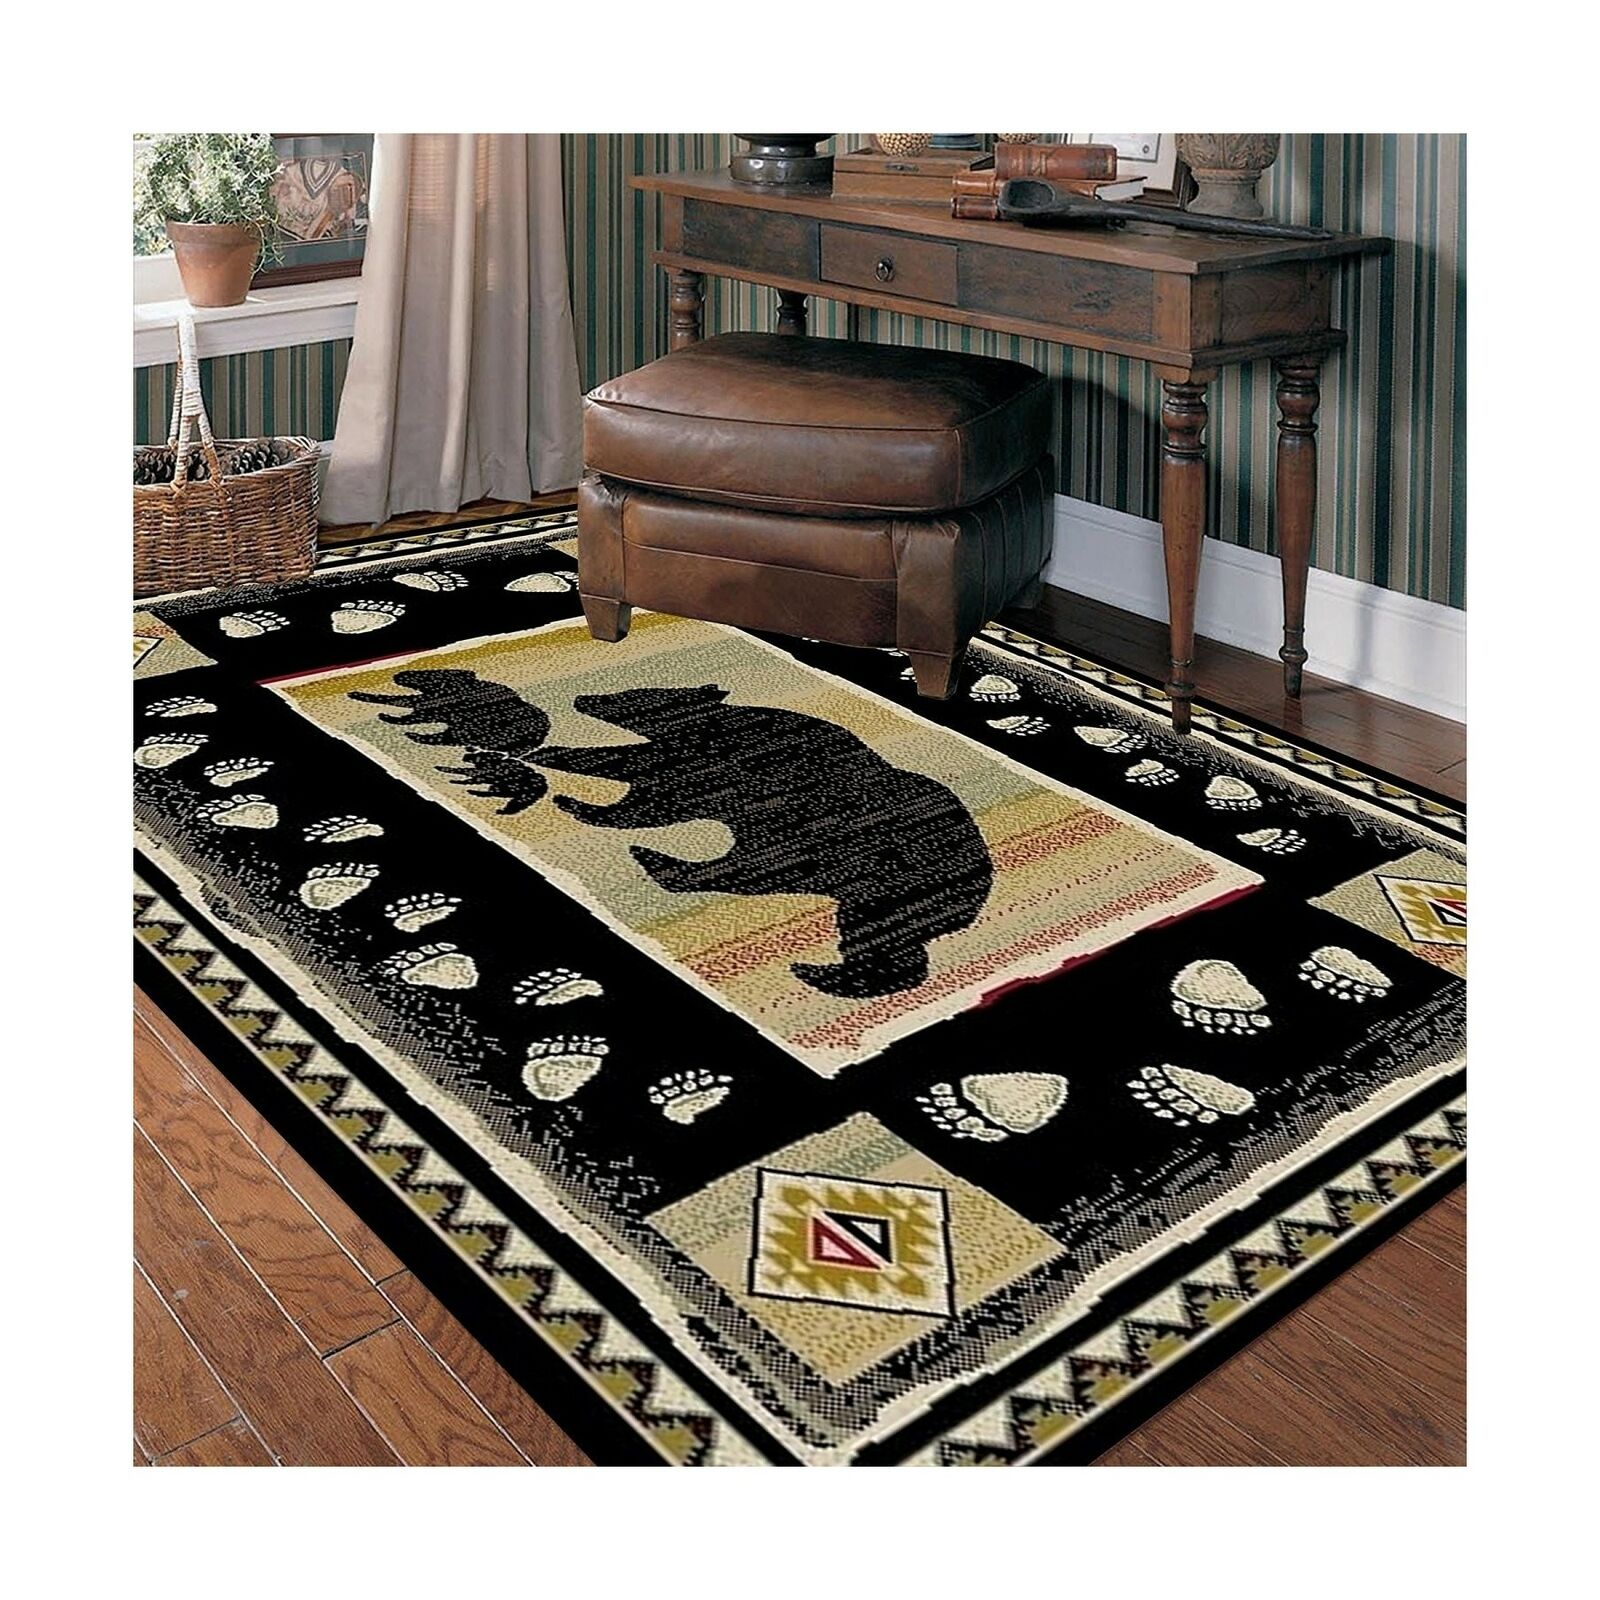 Black Bear Rustic Lodge Area Rug